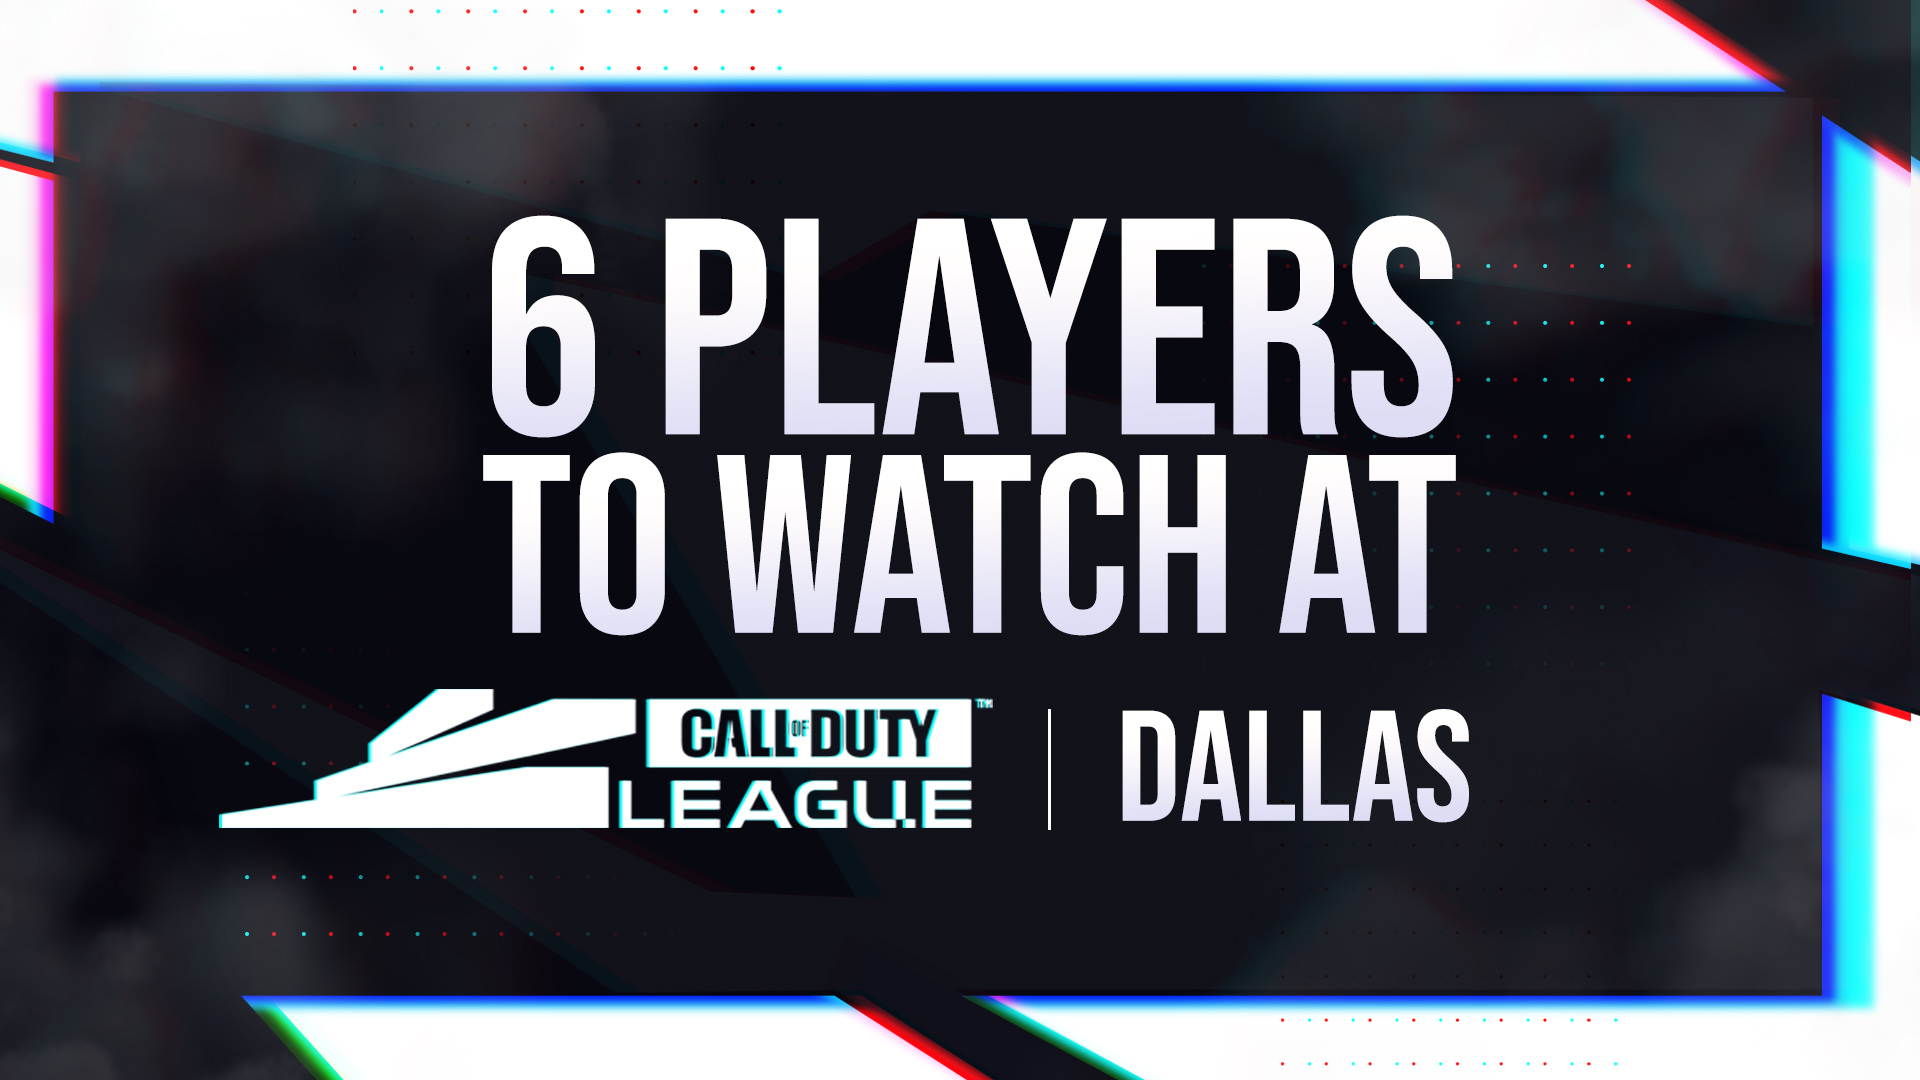 6 players to watch during CDL Dallas